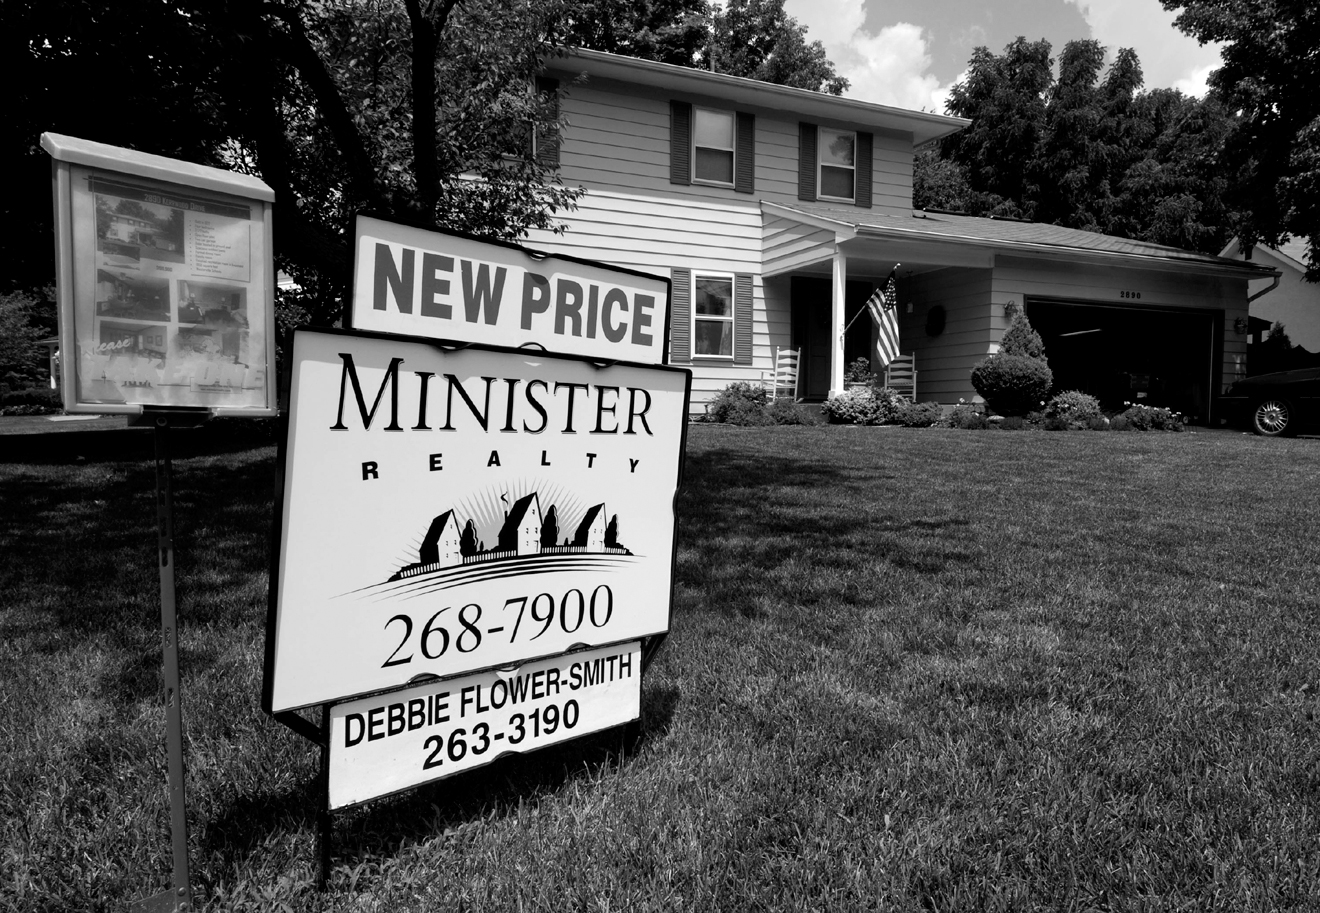 U.S. home prices may be lost for a generation